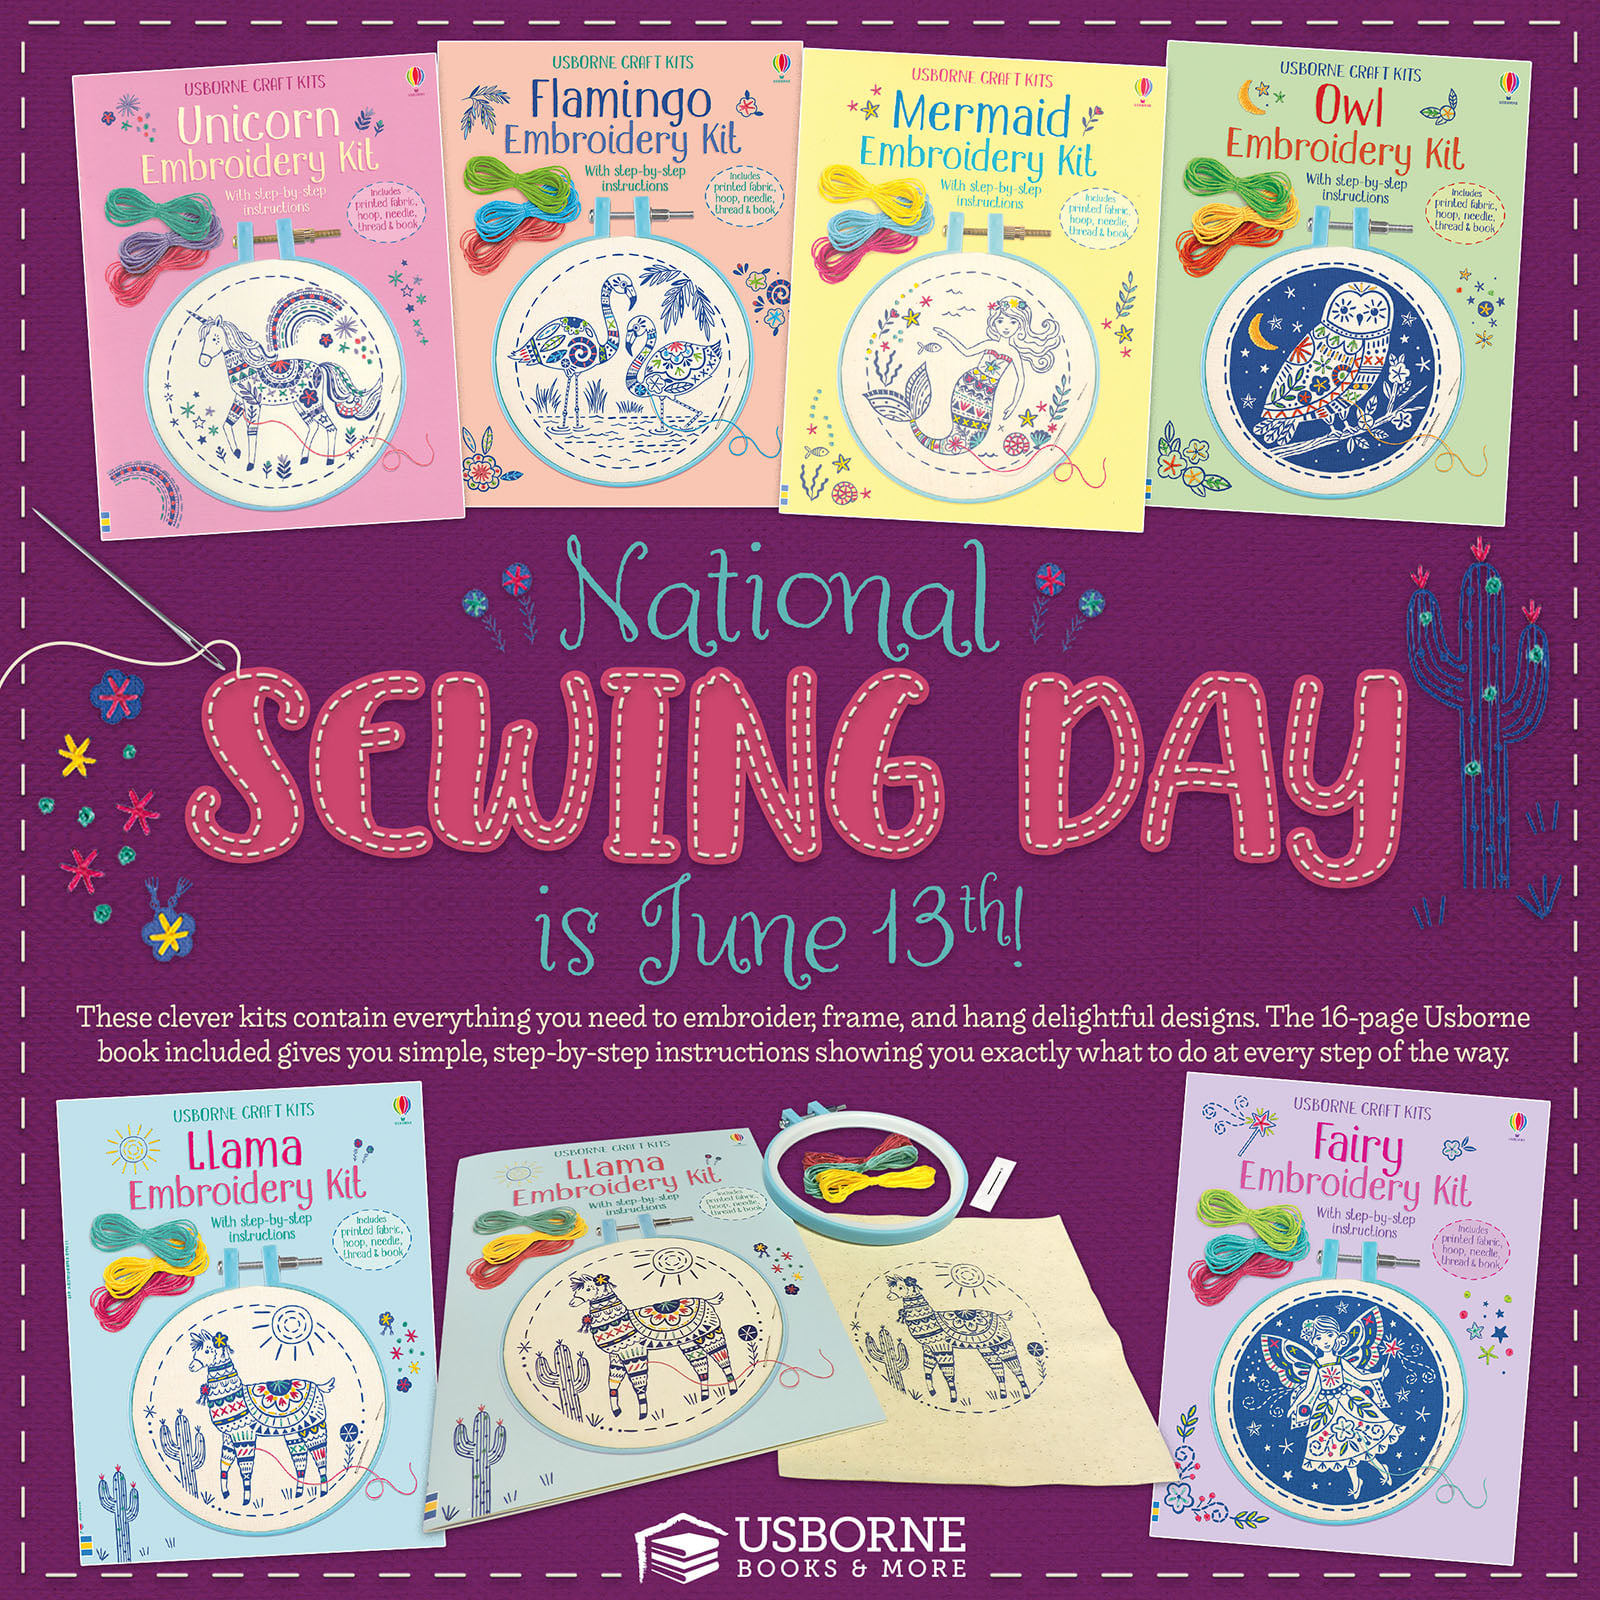 National Sewing Day is June 13th.